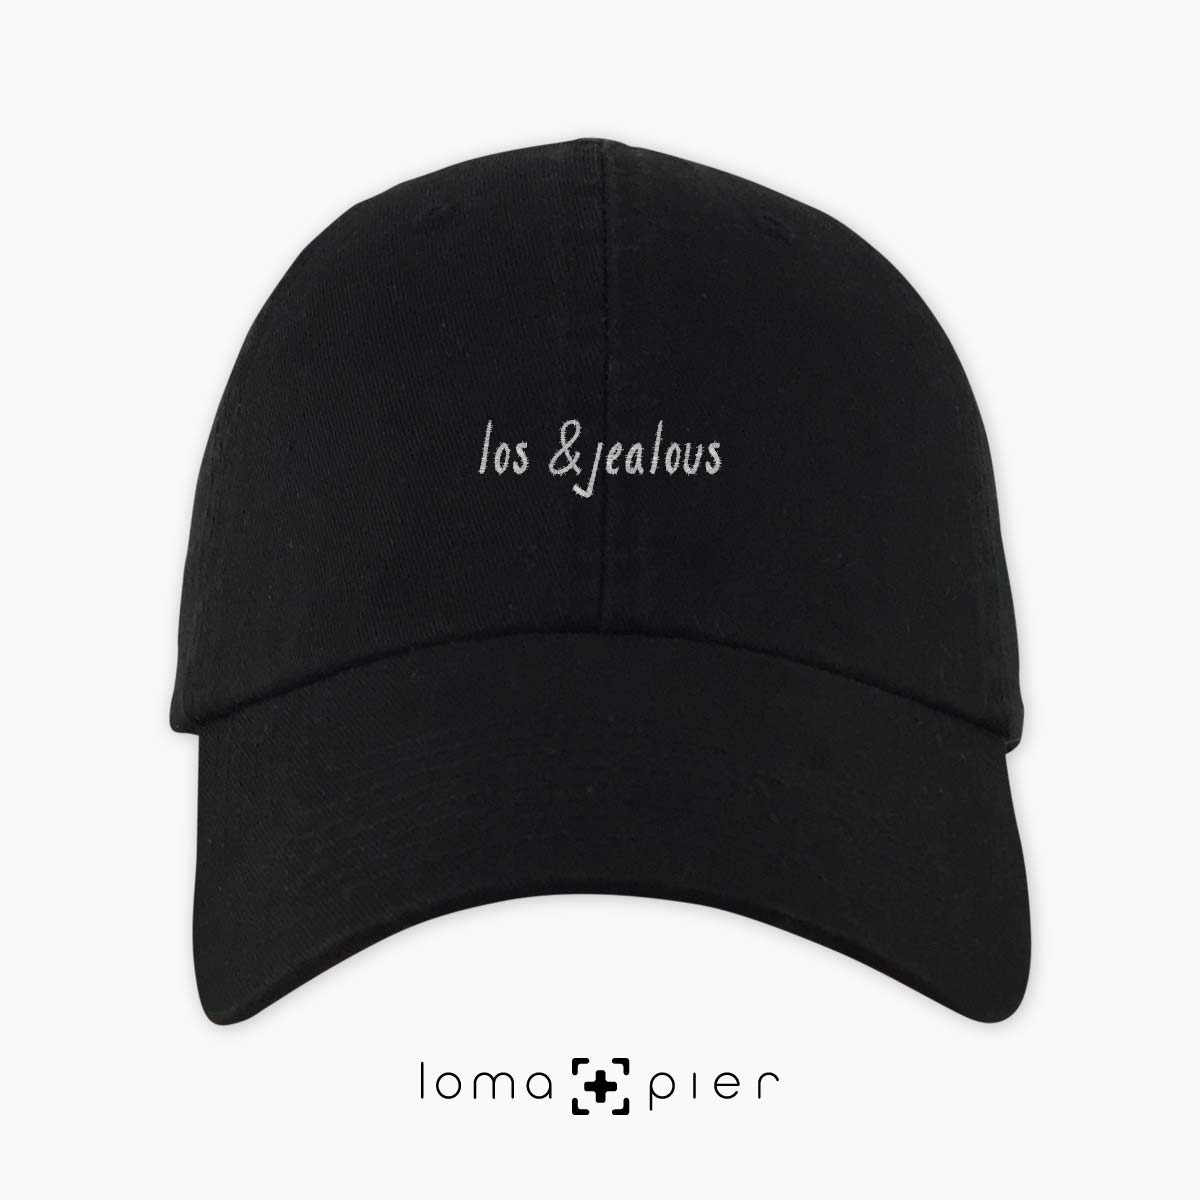 LOS &JEALOUS typography embroidered black dad hat white thread loma+pier hat store made in USA